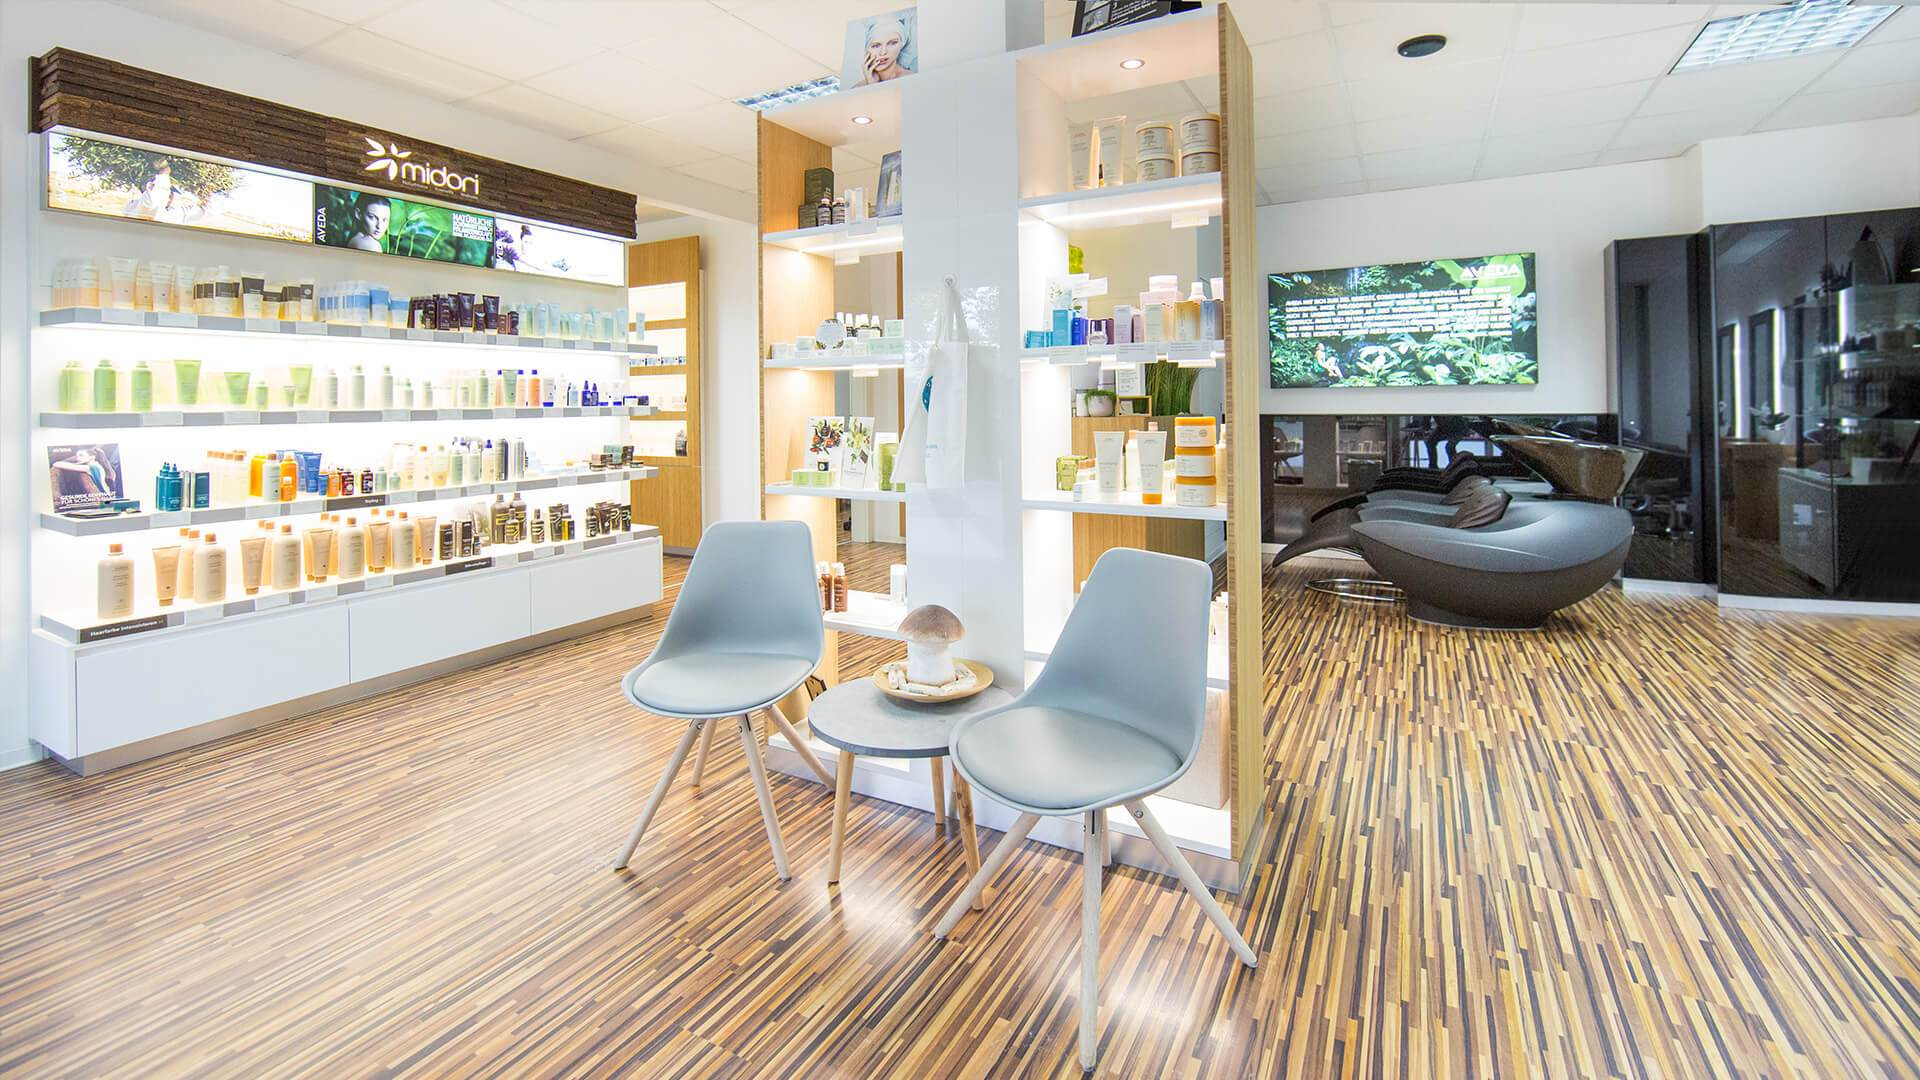 Home - Friseur & Spa in Erlangen: midori - Salon & Spa